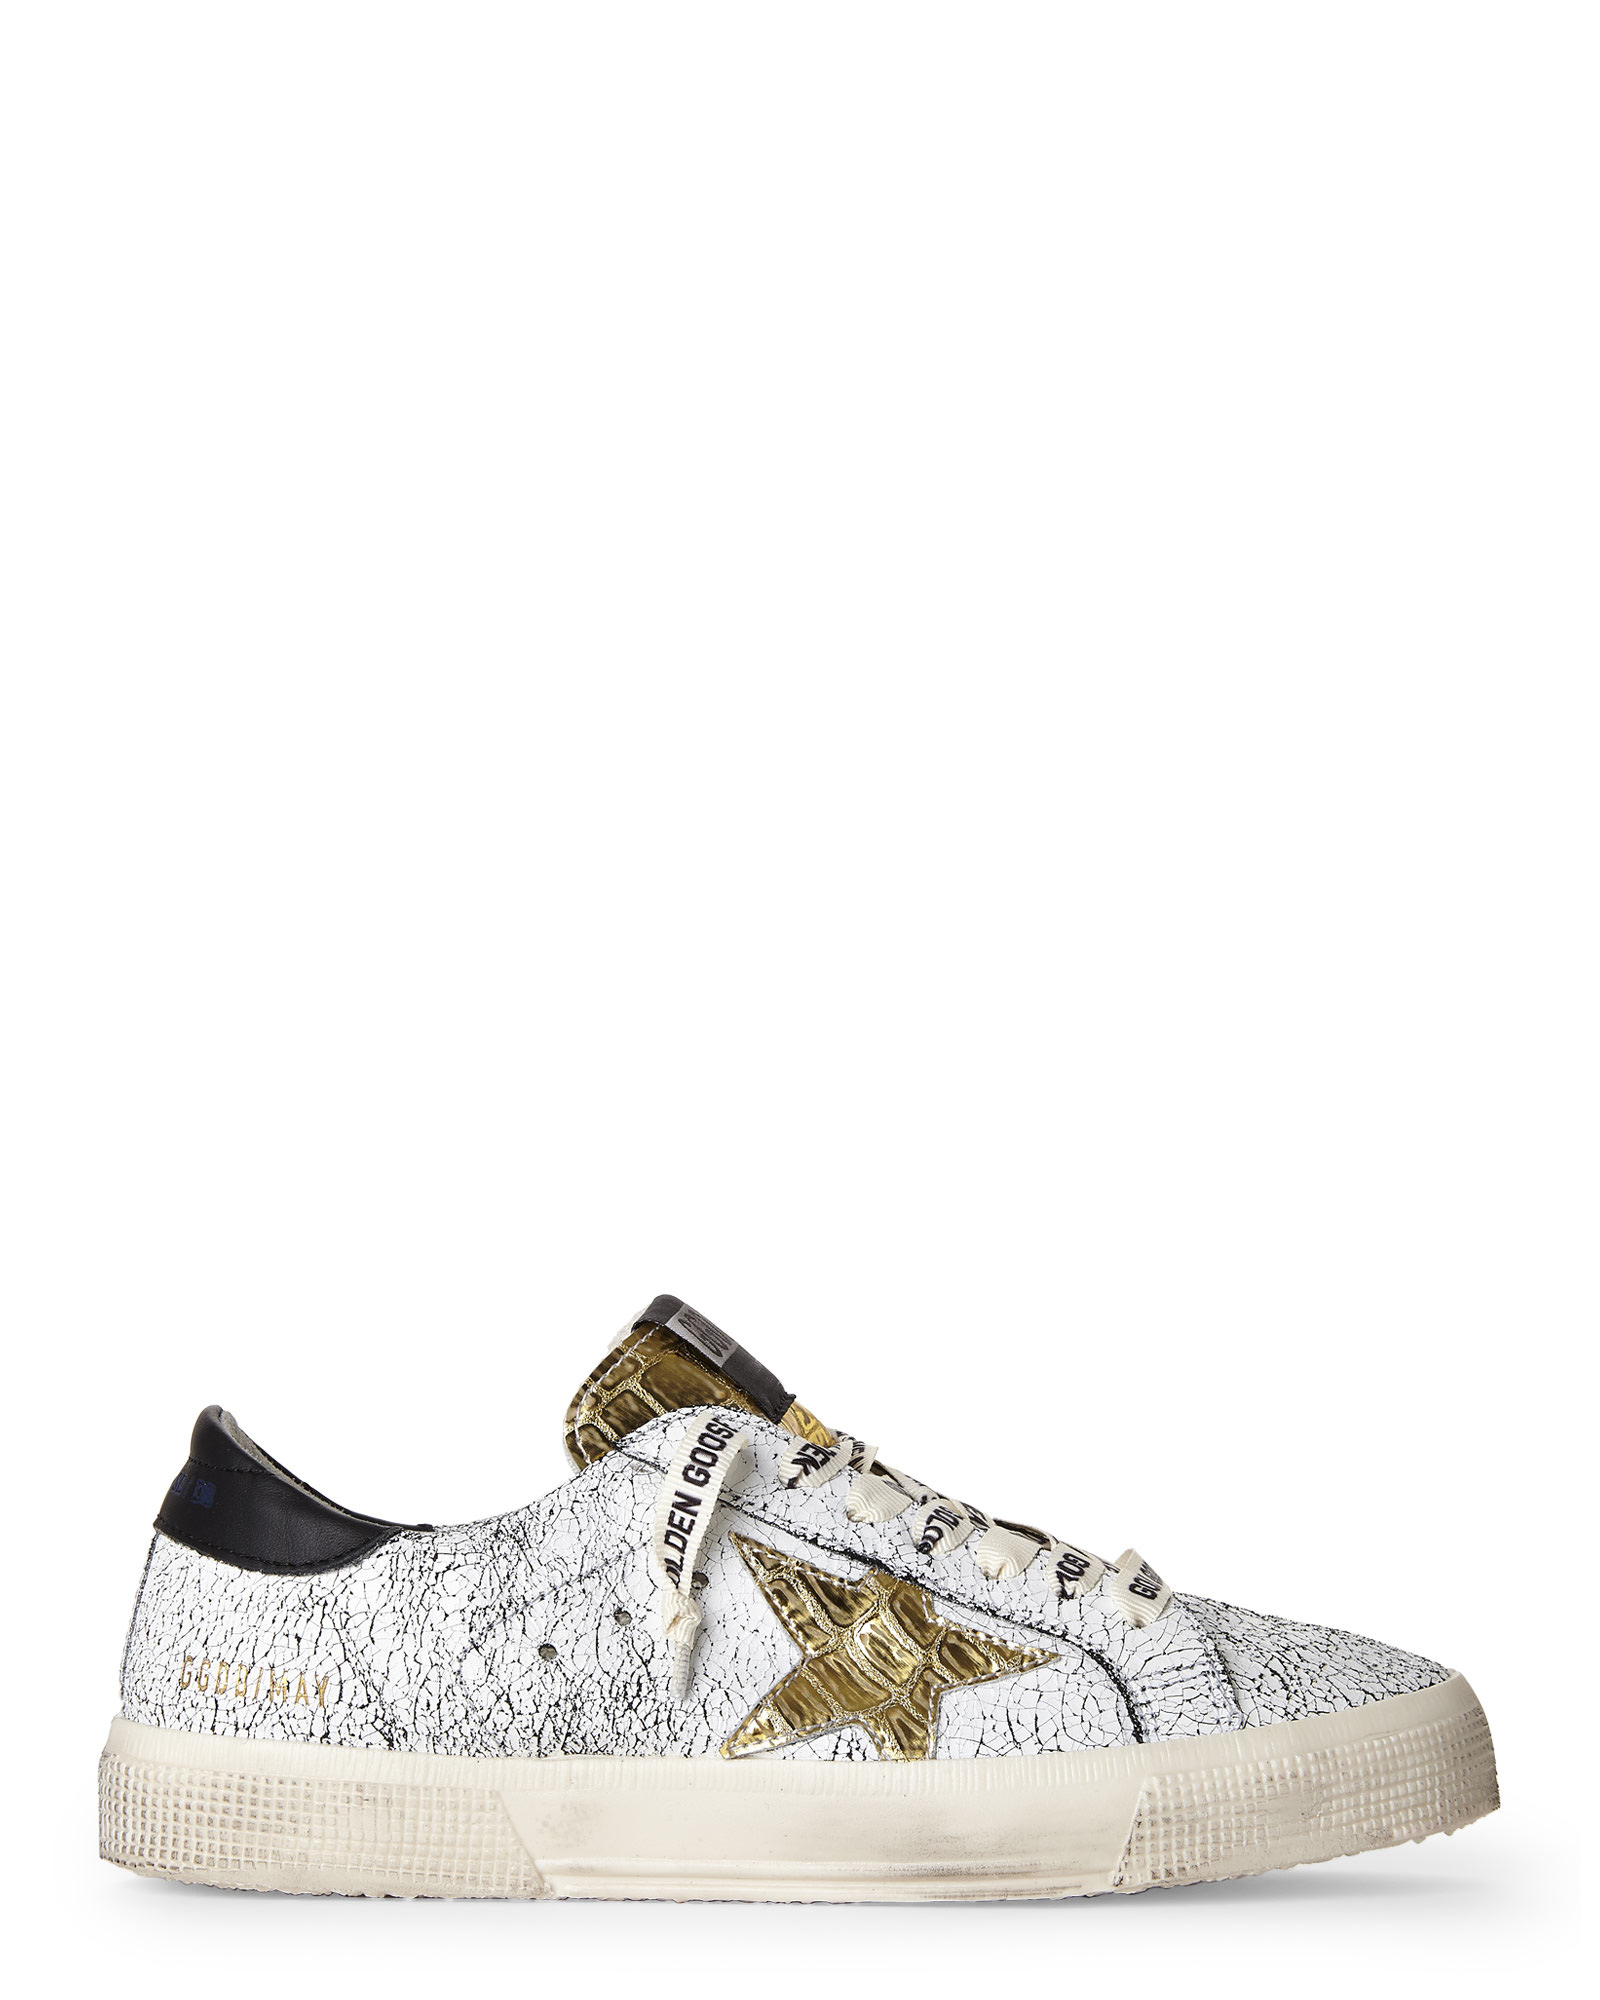 72e083dcda2b4 Lyst - Golden Goose Deluxe Brand Crackle May Sneakers in Metallic